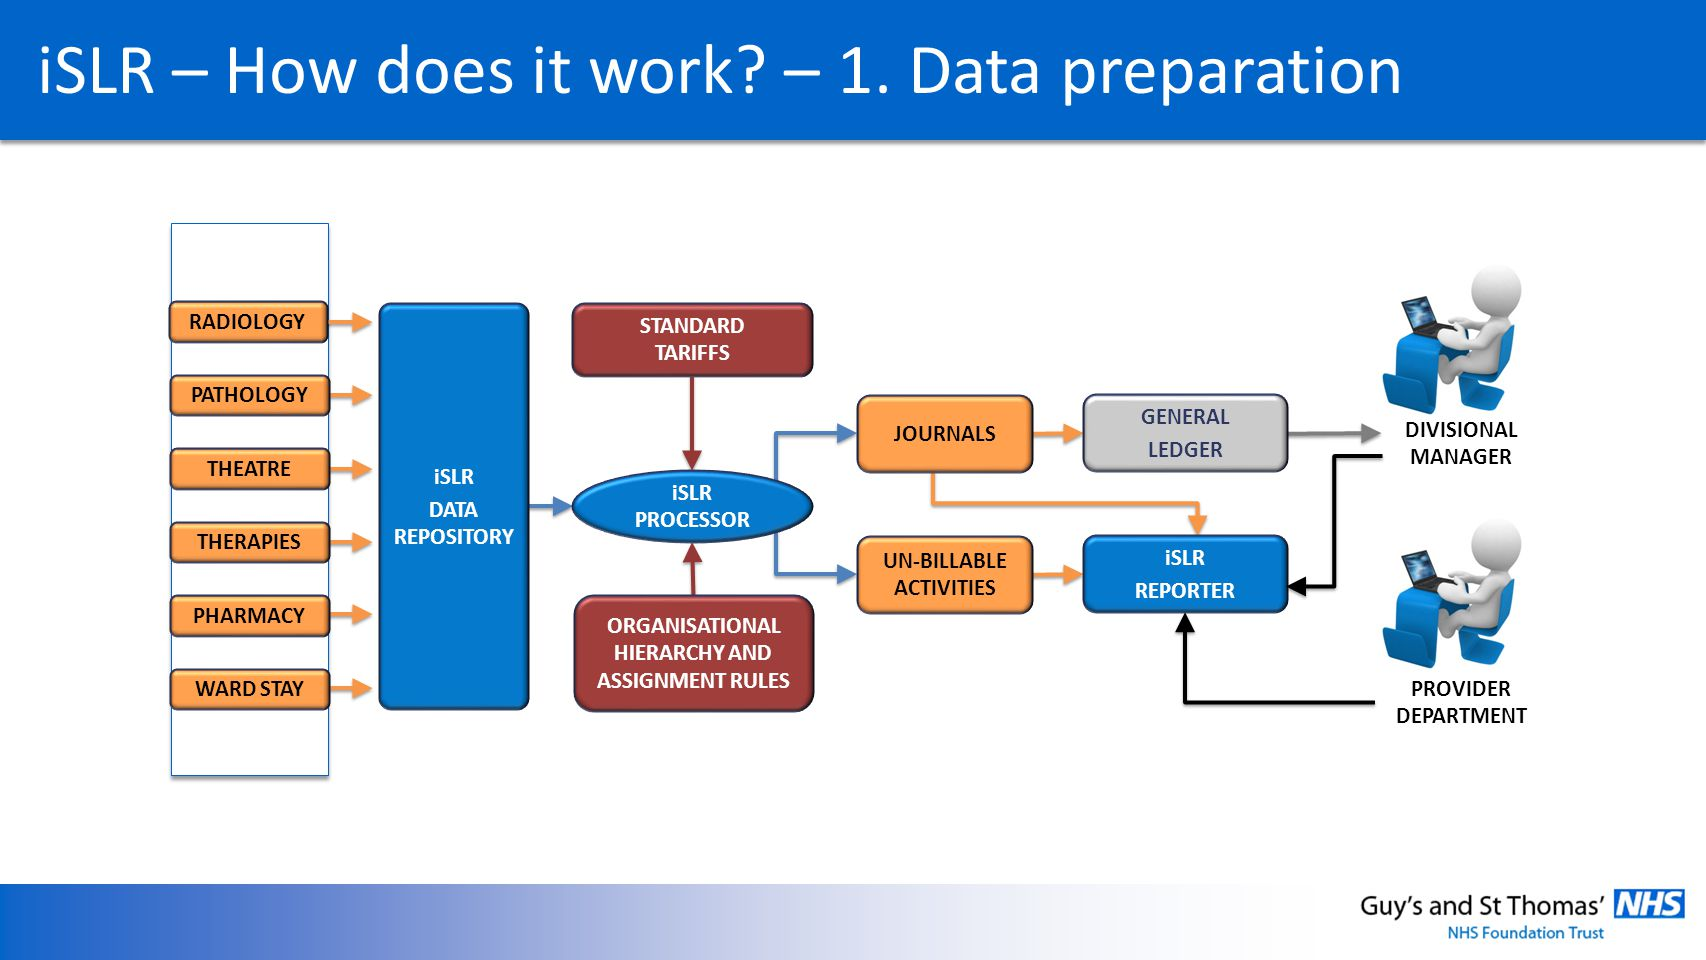 iSLR – How does it work – 1. Data preparation